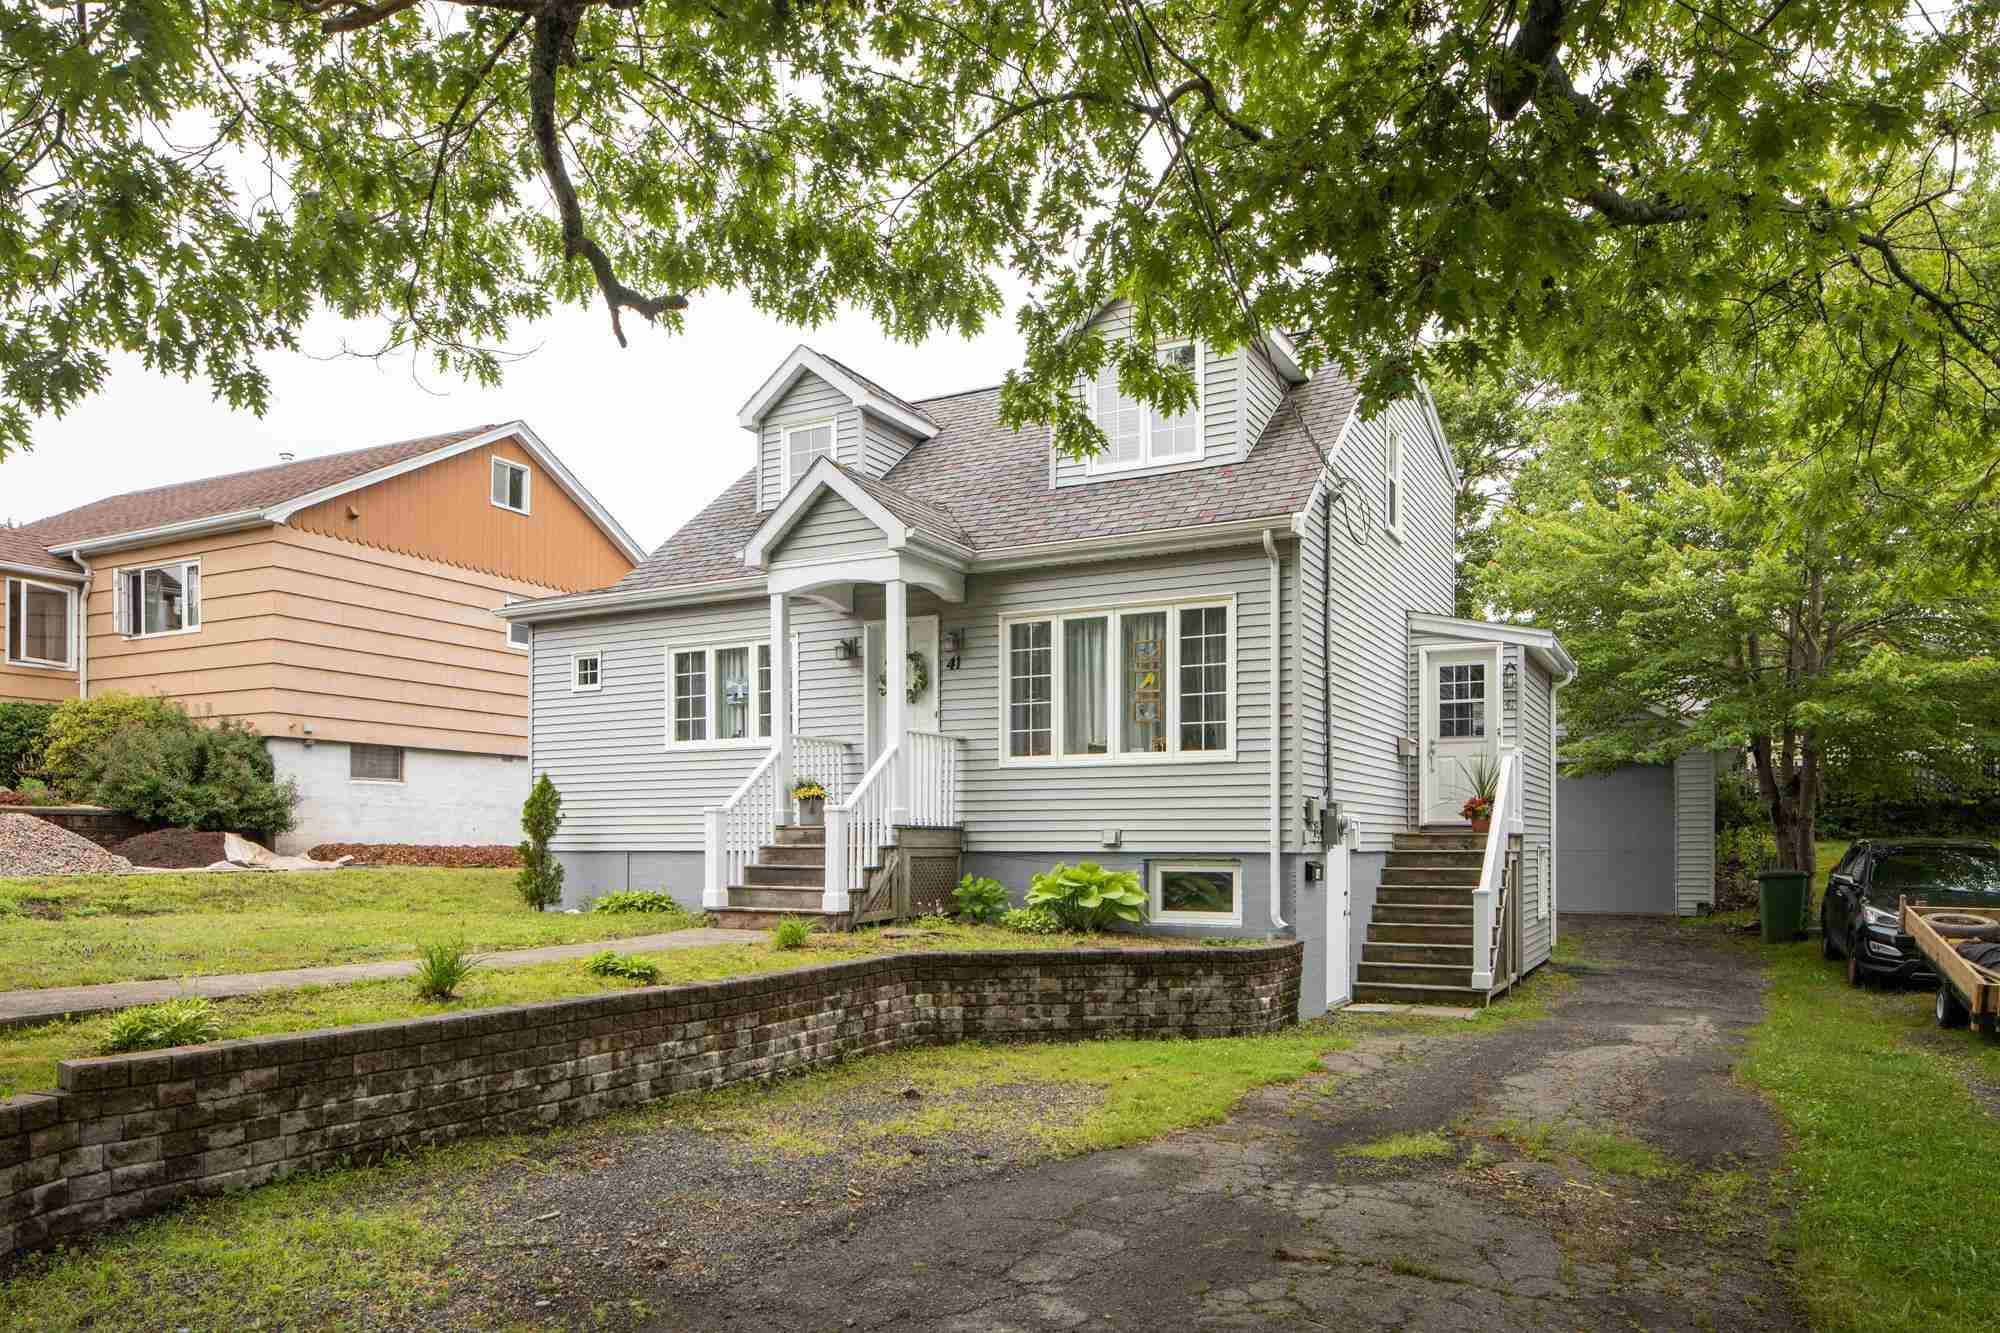 Main Photo: 41 Central Avenue in Halifax: 6-Fairview Residential for sale (Halifax-Dartmouth)  : MLS®# 202116973